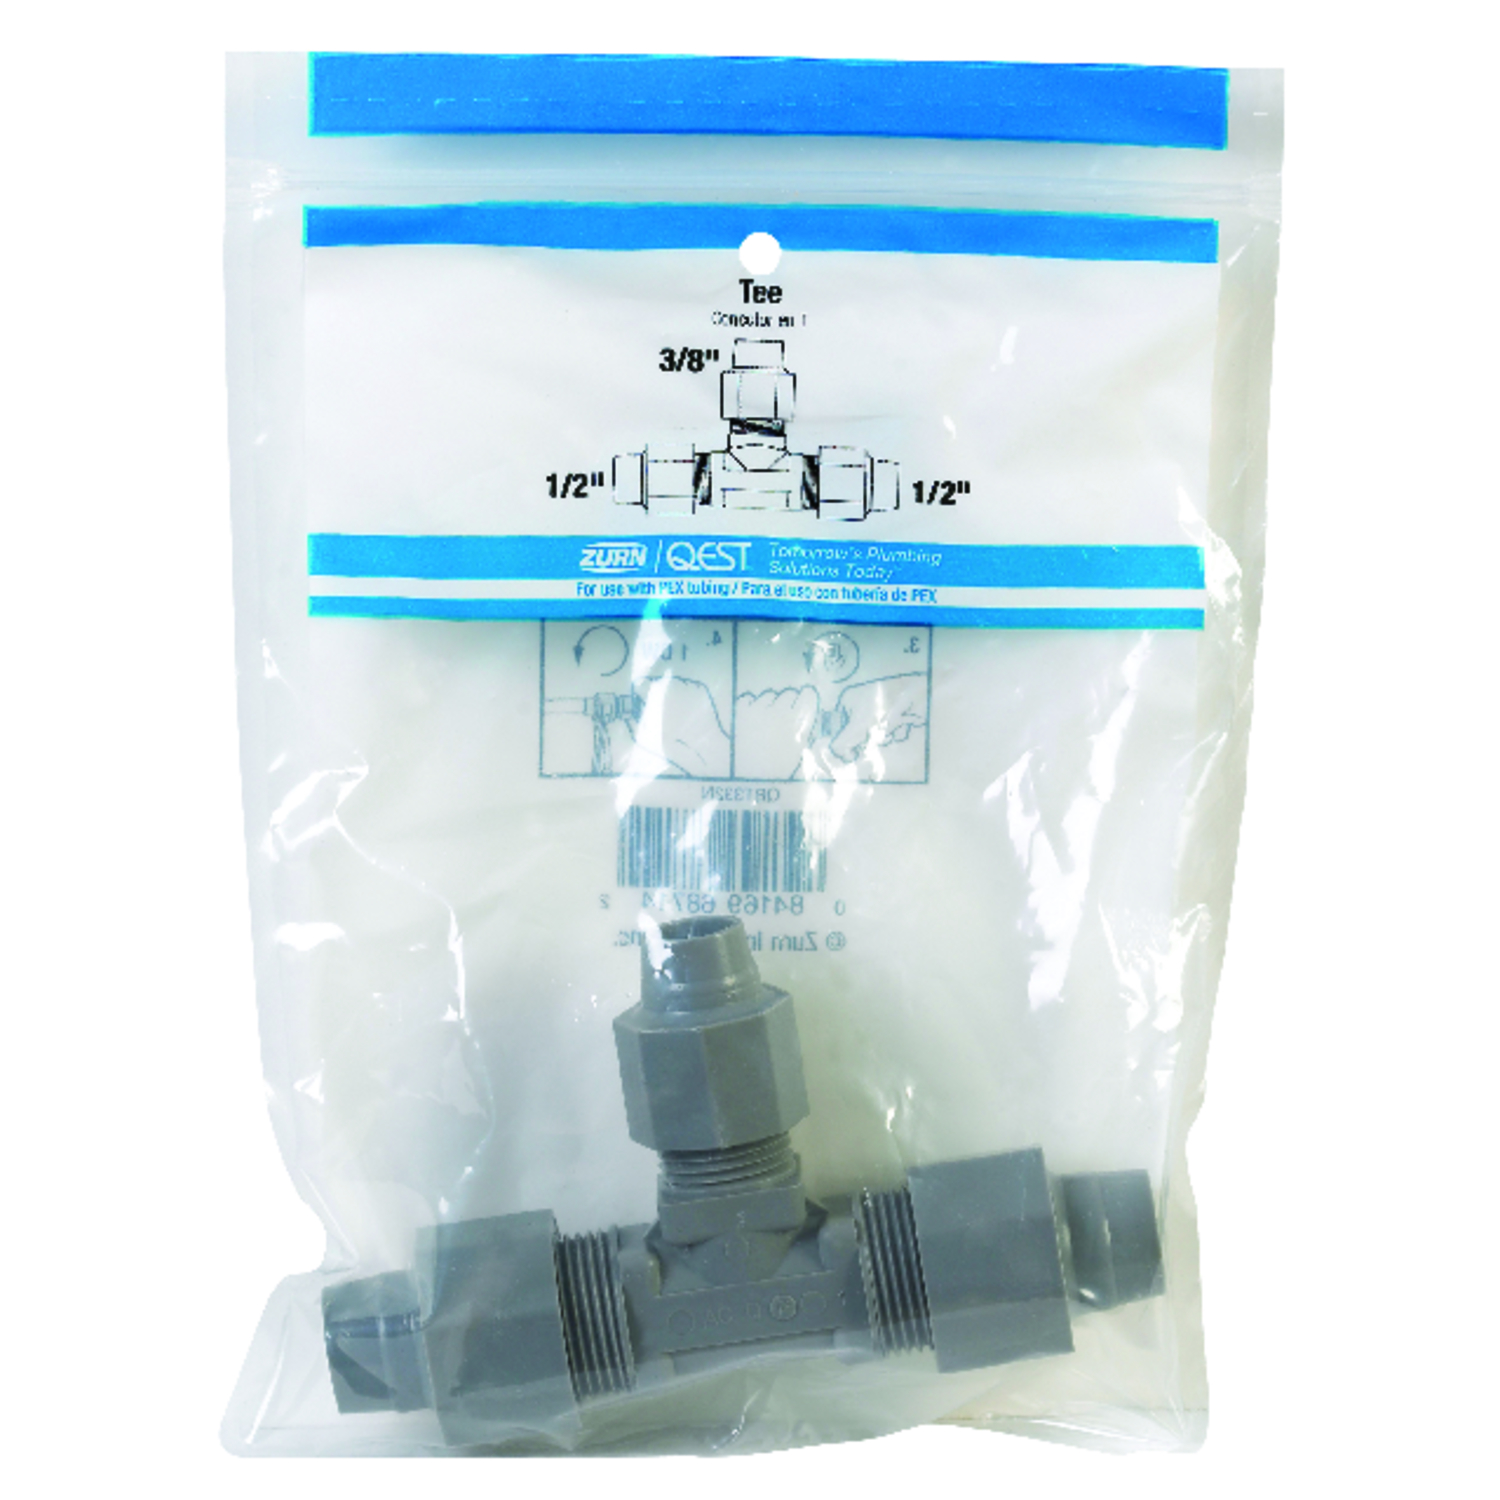 Zurn 1/2 in. CTS x 1/2 in. Dia. CTS Tee Polybutylene - Ace Hardware